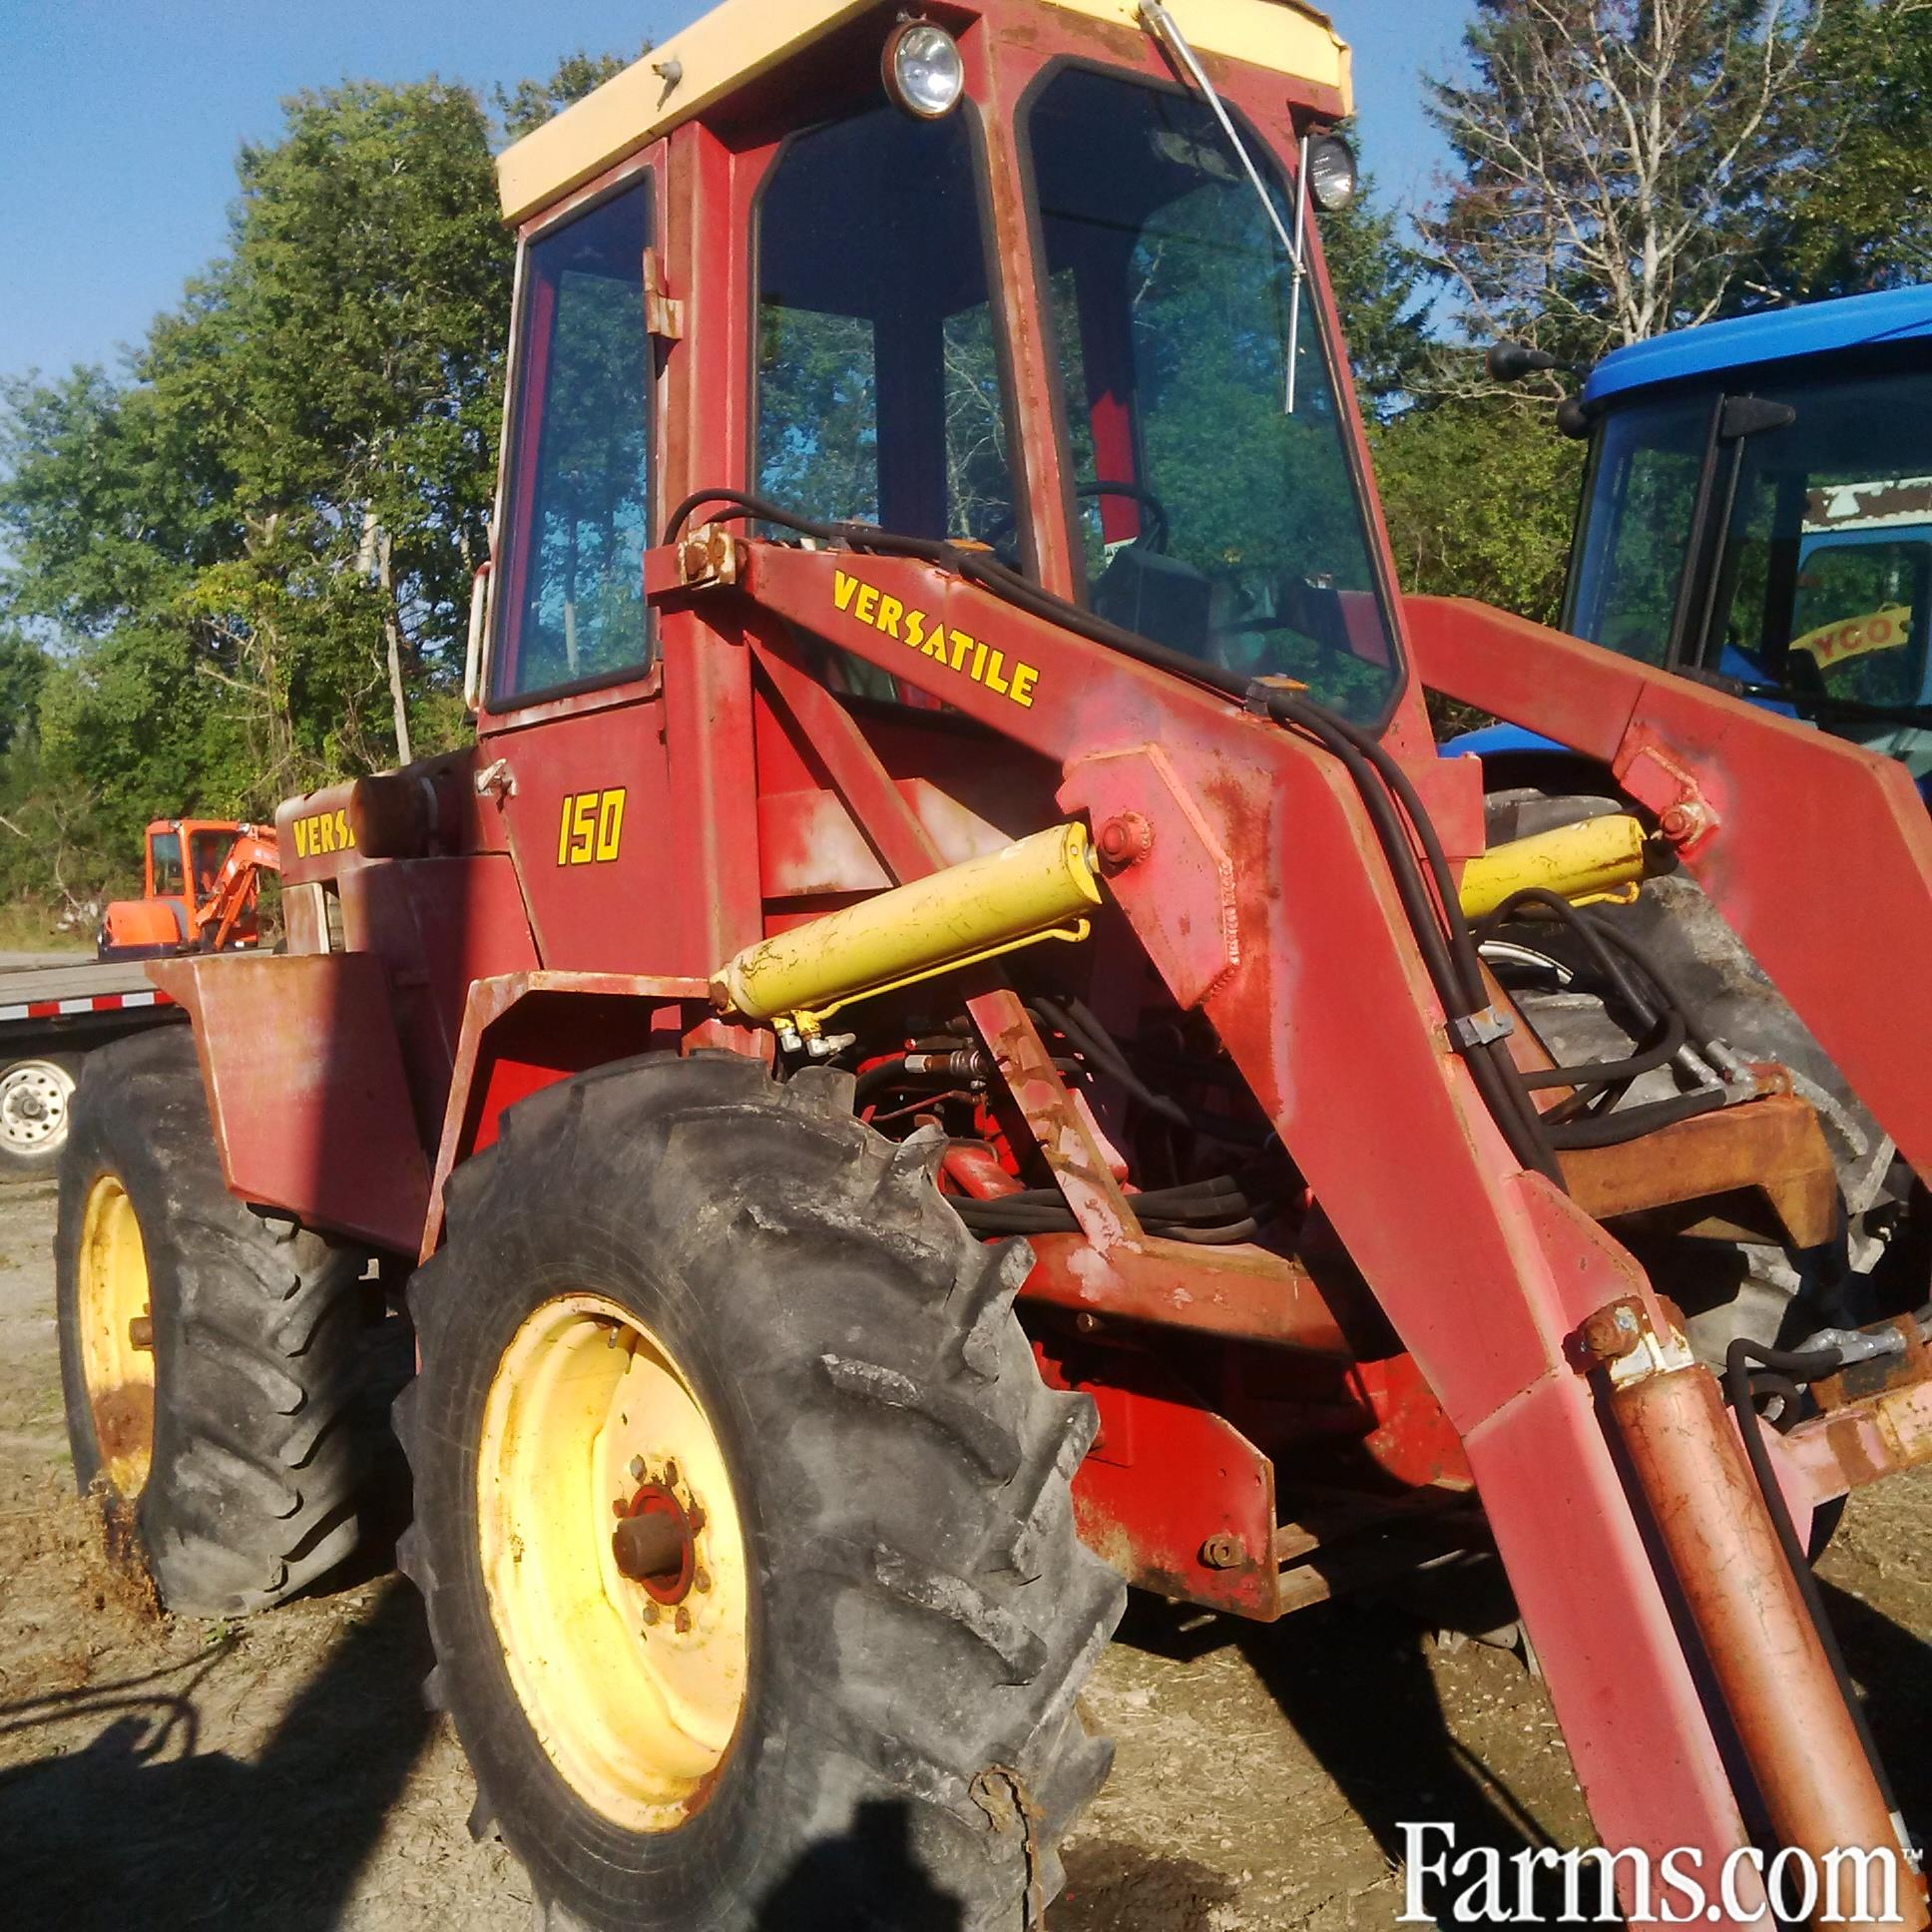 Used Backhoe Engines : Versatile reduced for sale farms